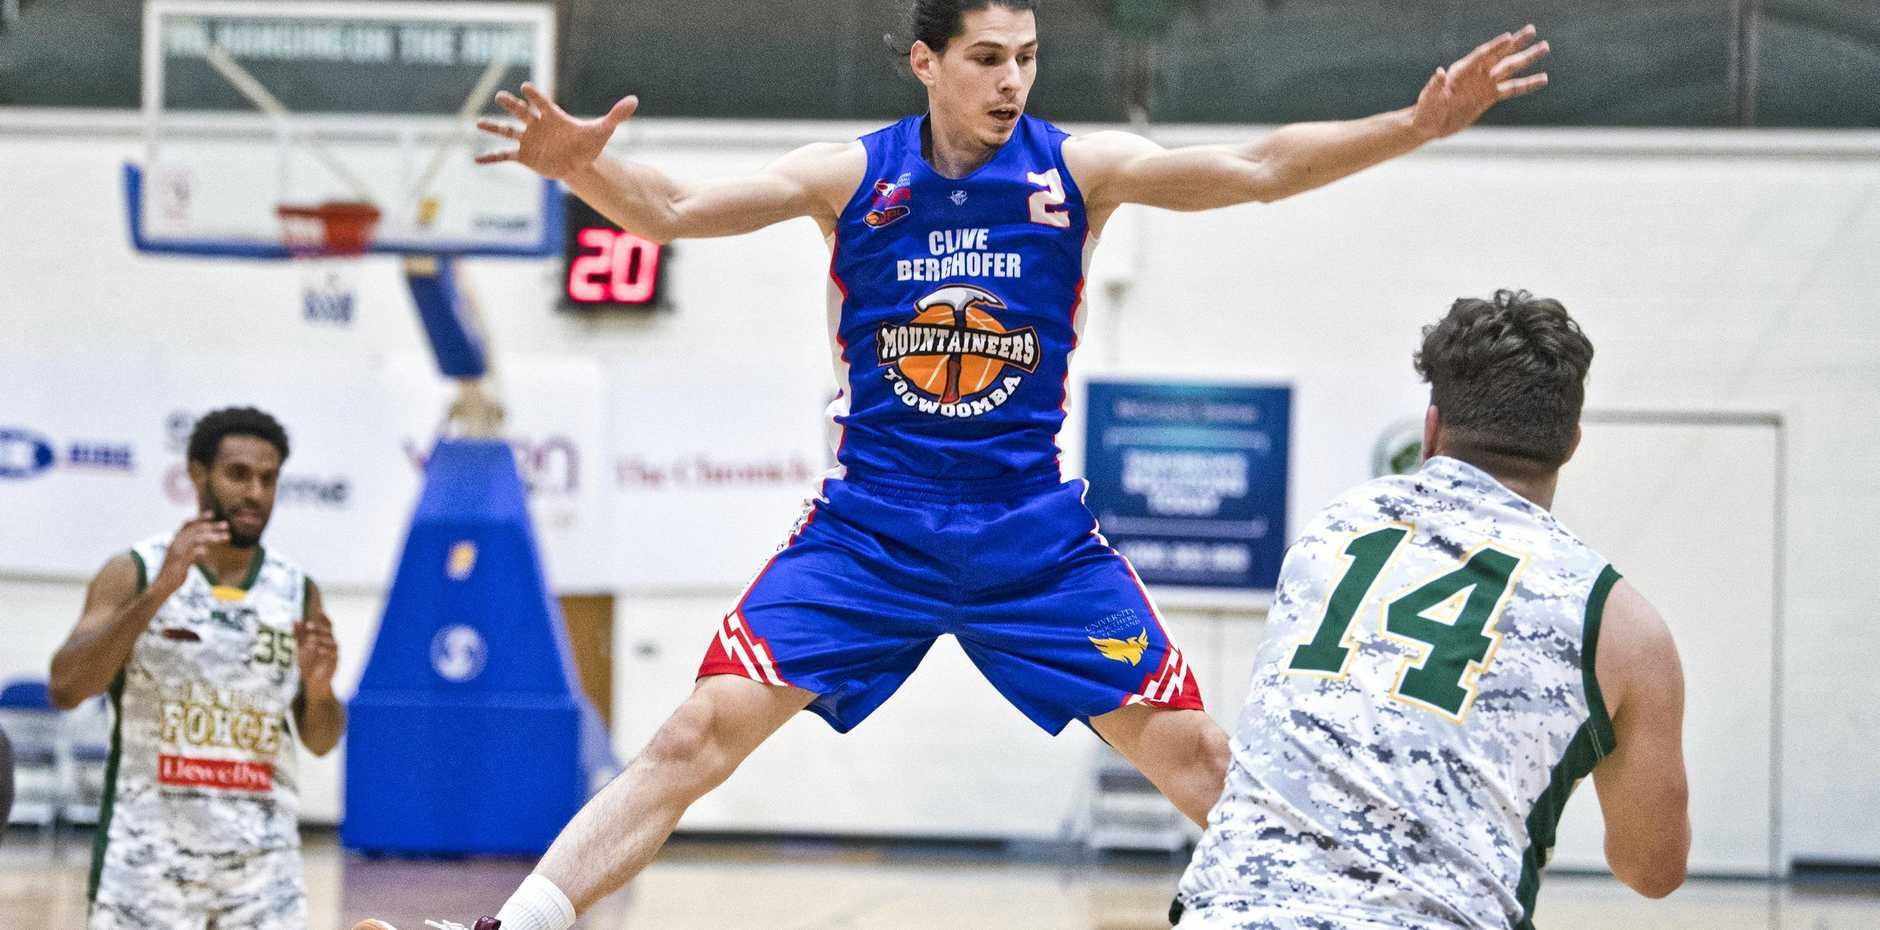 WHATEVER IT TAKES: Toowoomba Mountaineers guard Ranko Puseljic is one of six rookies in the side. Coach Danny Breen expects the young core to take a lot out of the season.